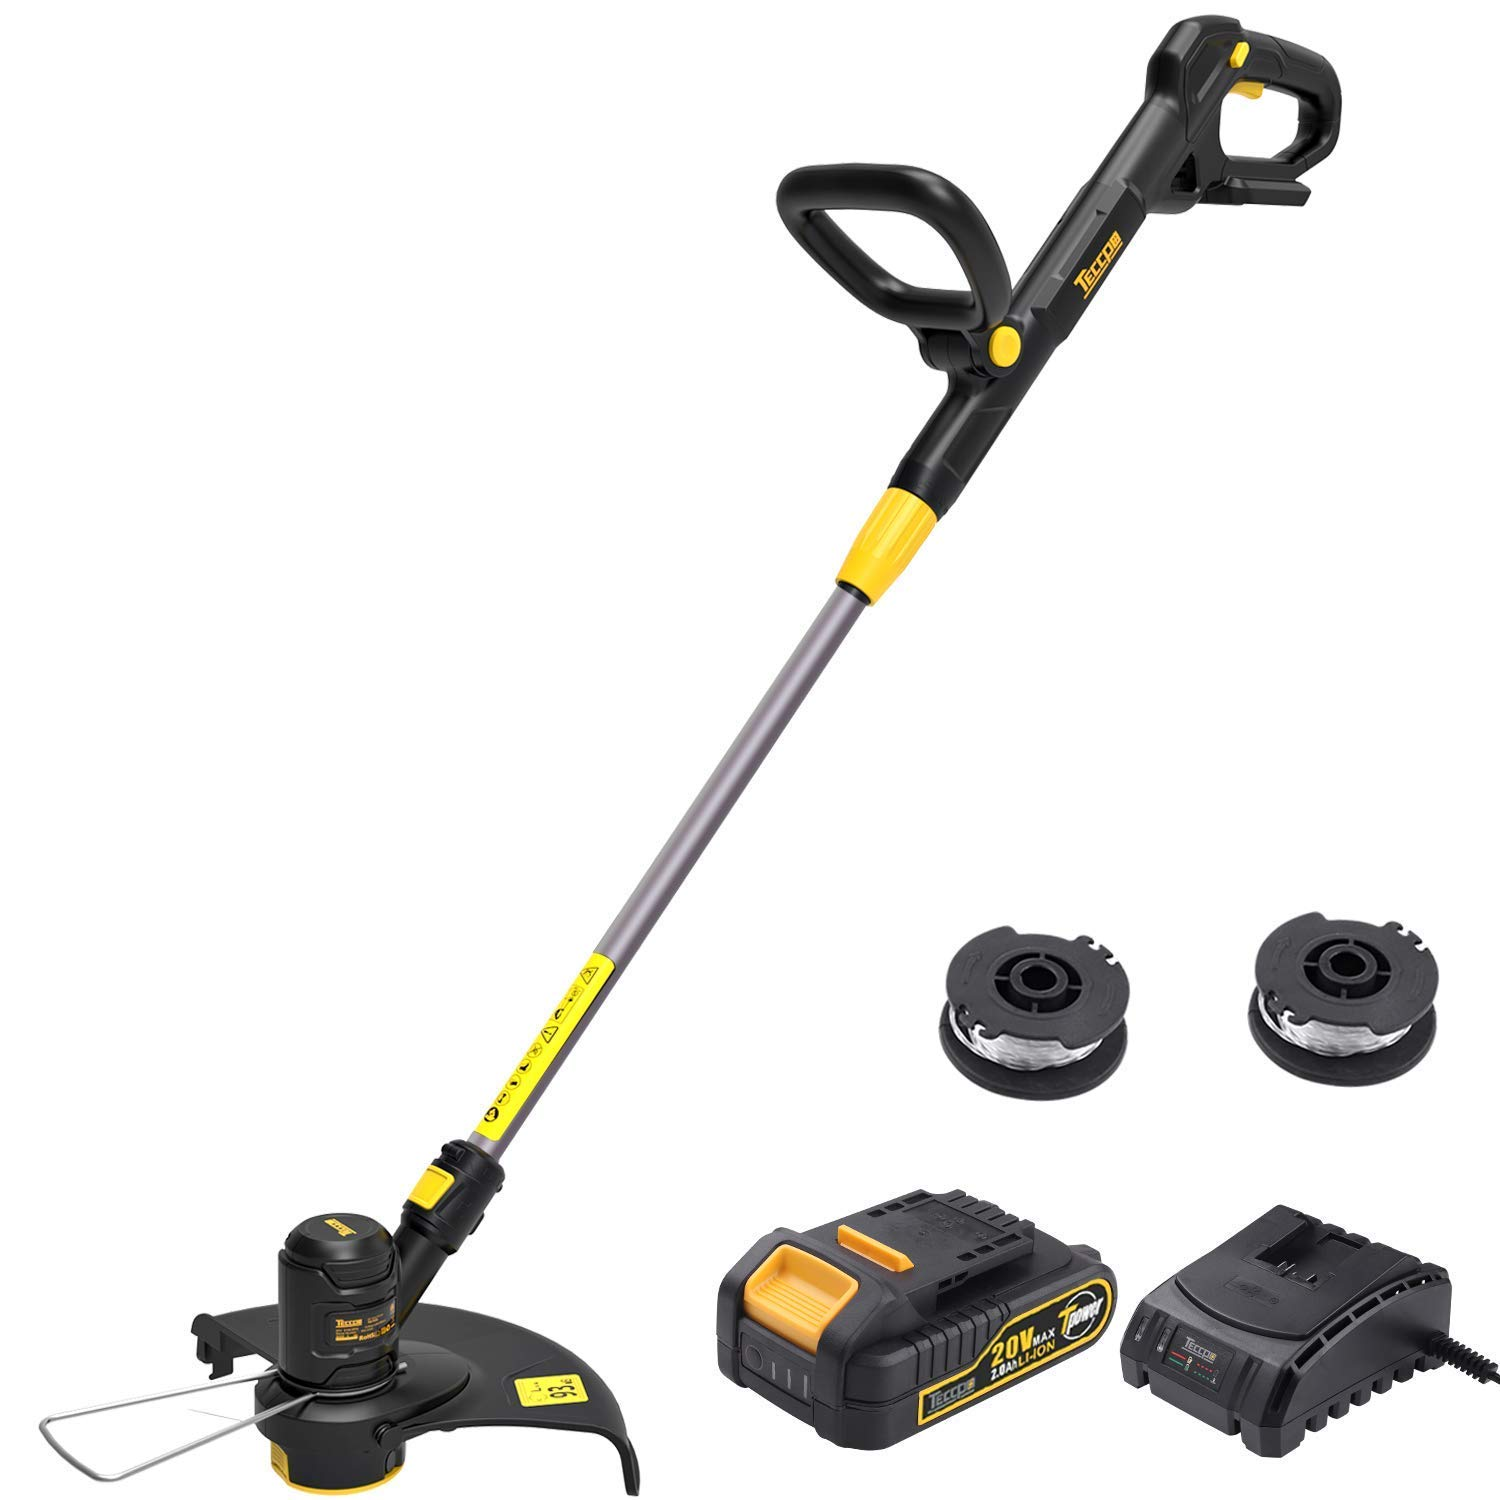 TECCPO String Trimmer, 20V 2Ah Lithium Ion, 2 16ft Nylon Thread Spool, Automatic Feed Spool, 12in Cutting Swath, Cordless Professional Grass Trimmer Edger, Battery and Charger Include – TDLT02G